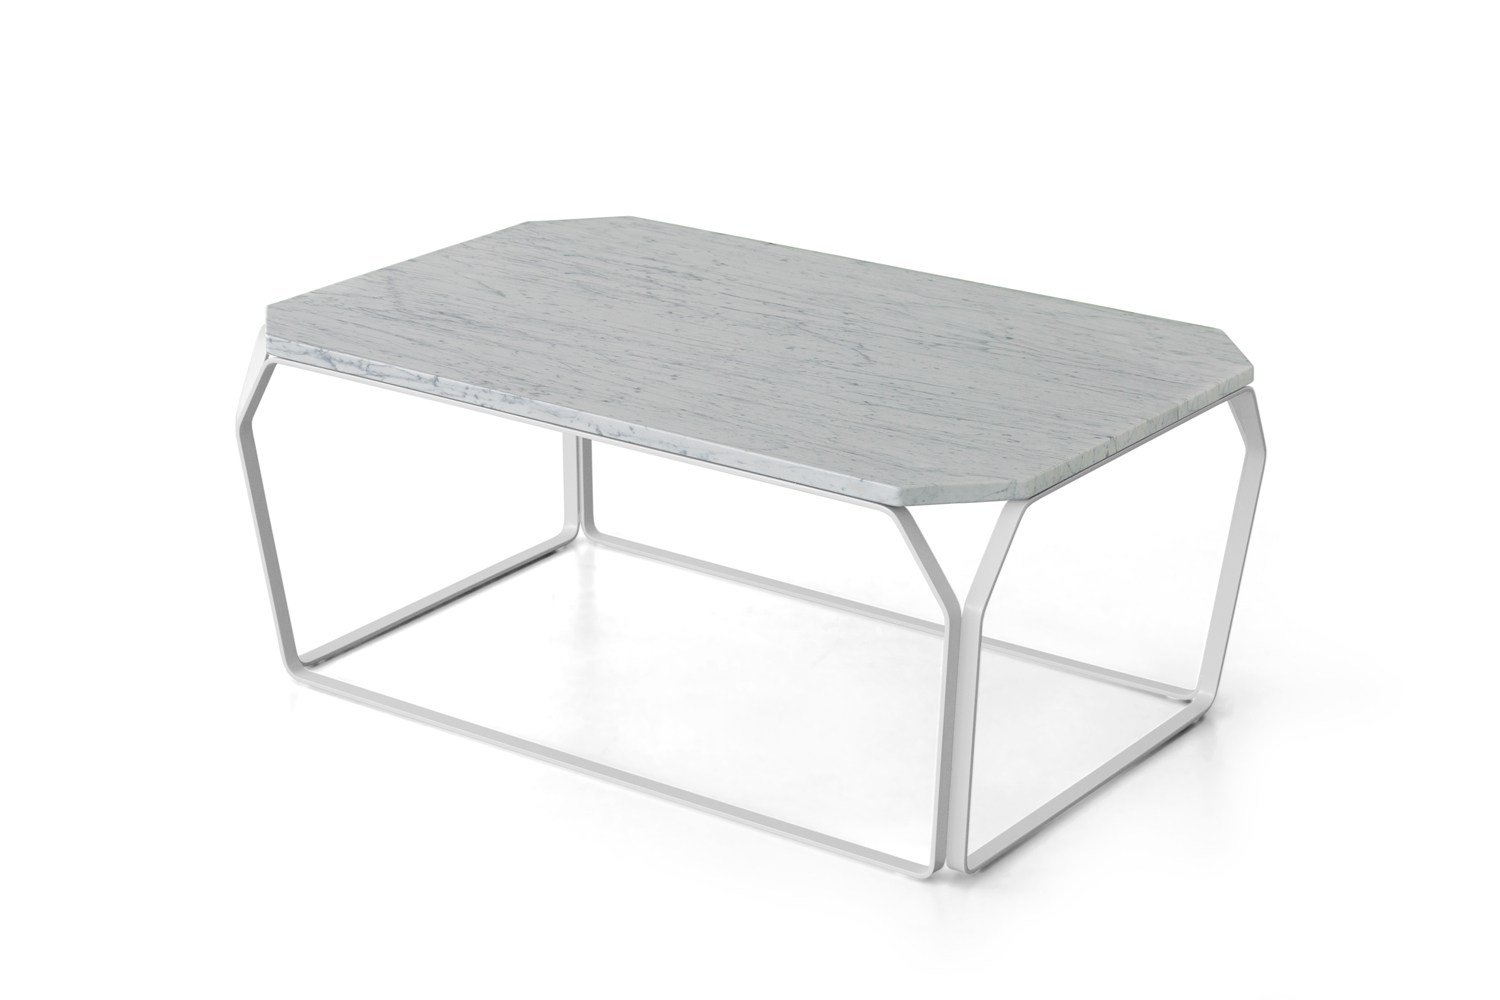 TRAY 3 Carrara marble coffee table Tray Collection By meme design